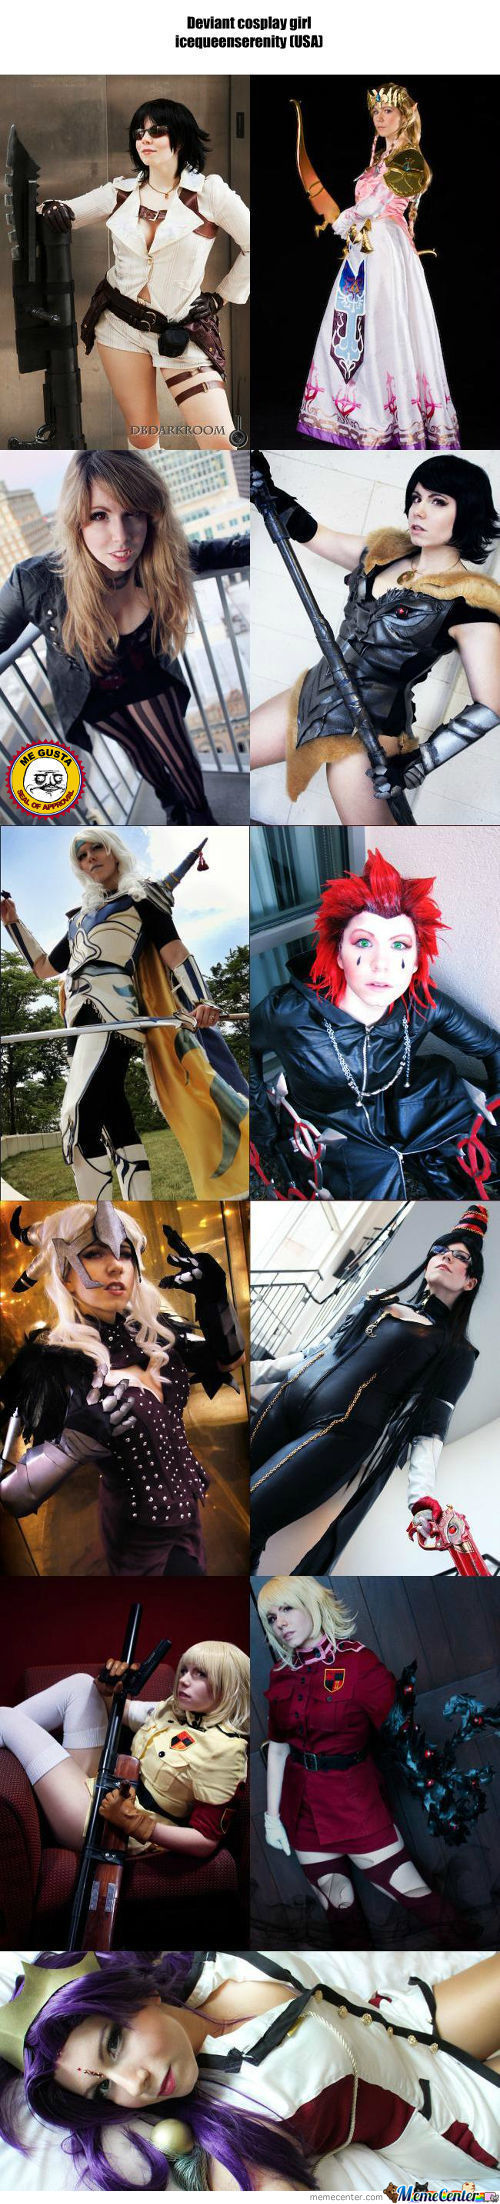 Cosplay Girl 101 : Icequeenserenity (Usa)